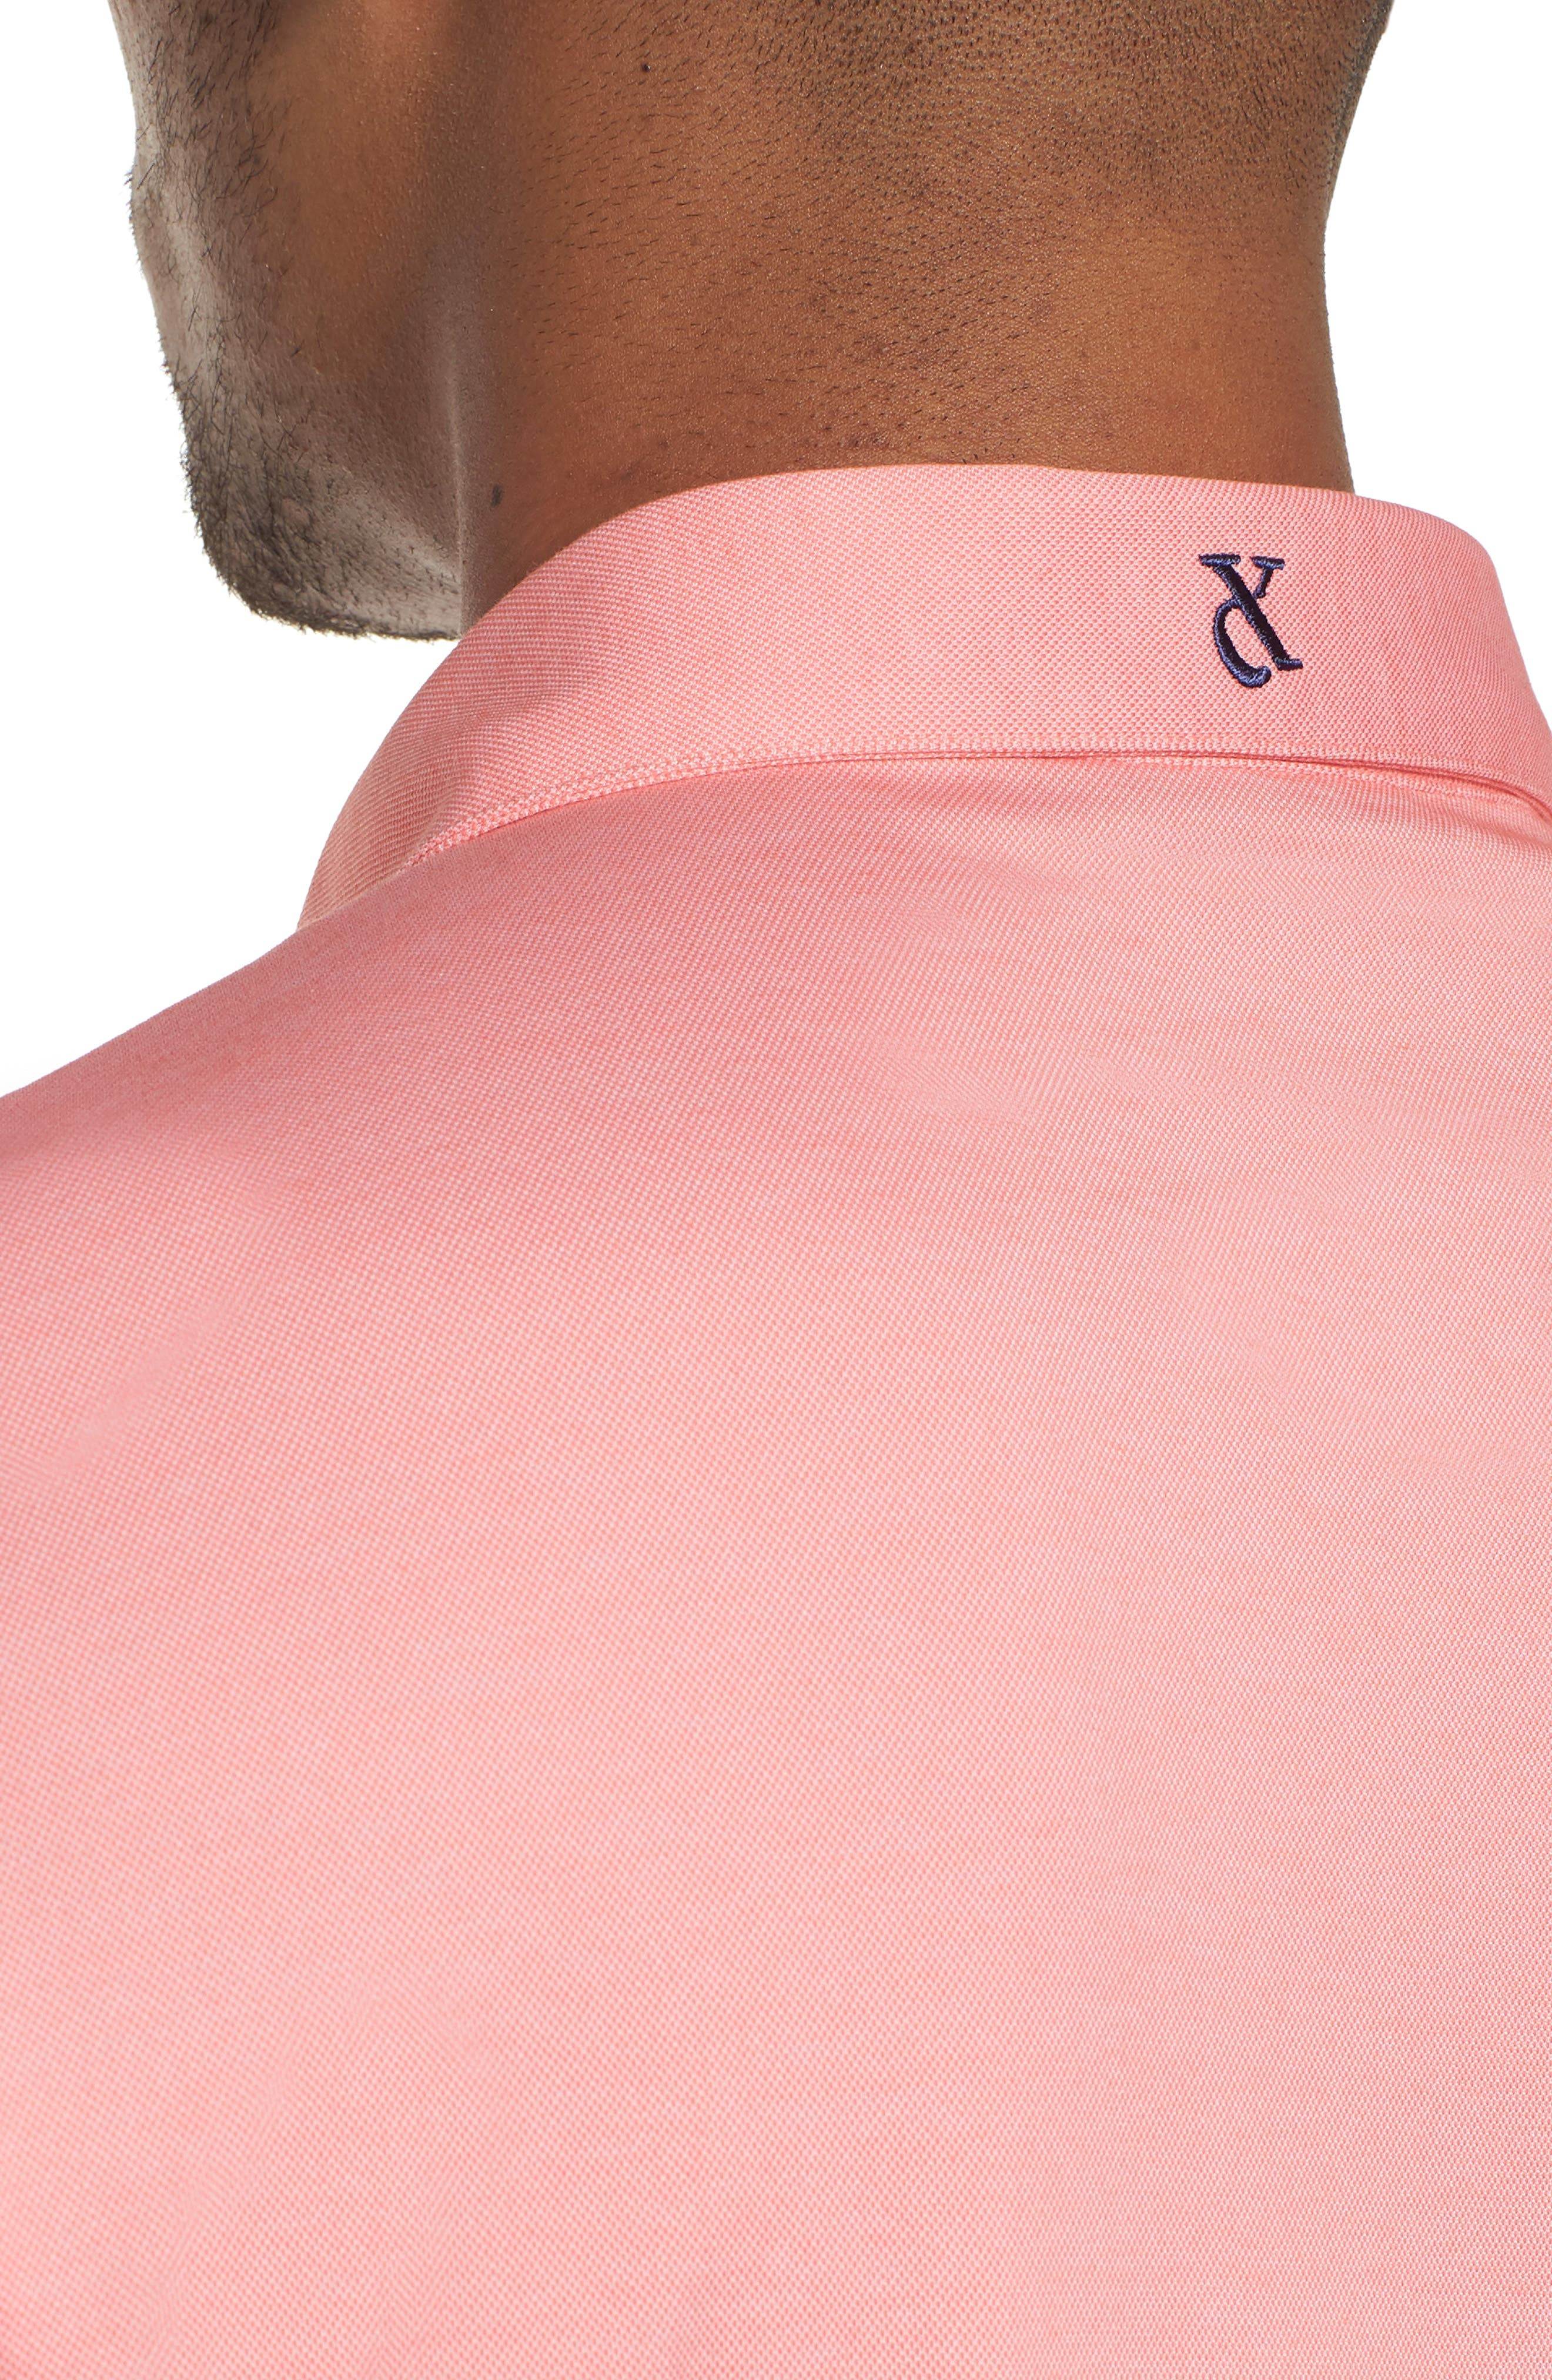 Andrew Regular Fit Piqué Polo,                             Alternate thumbnail 4, color,                             Coral